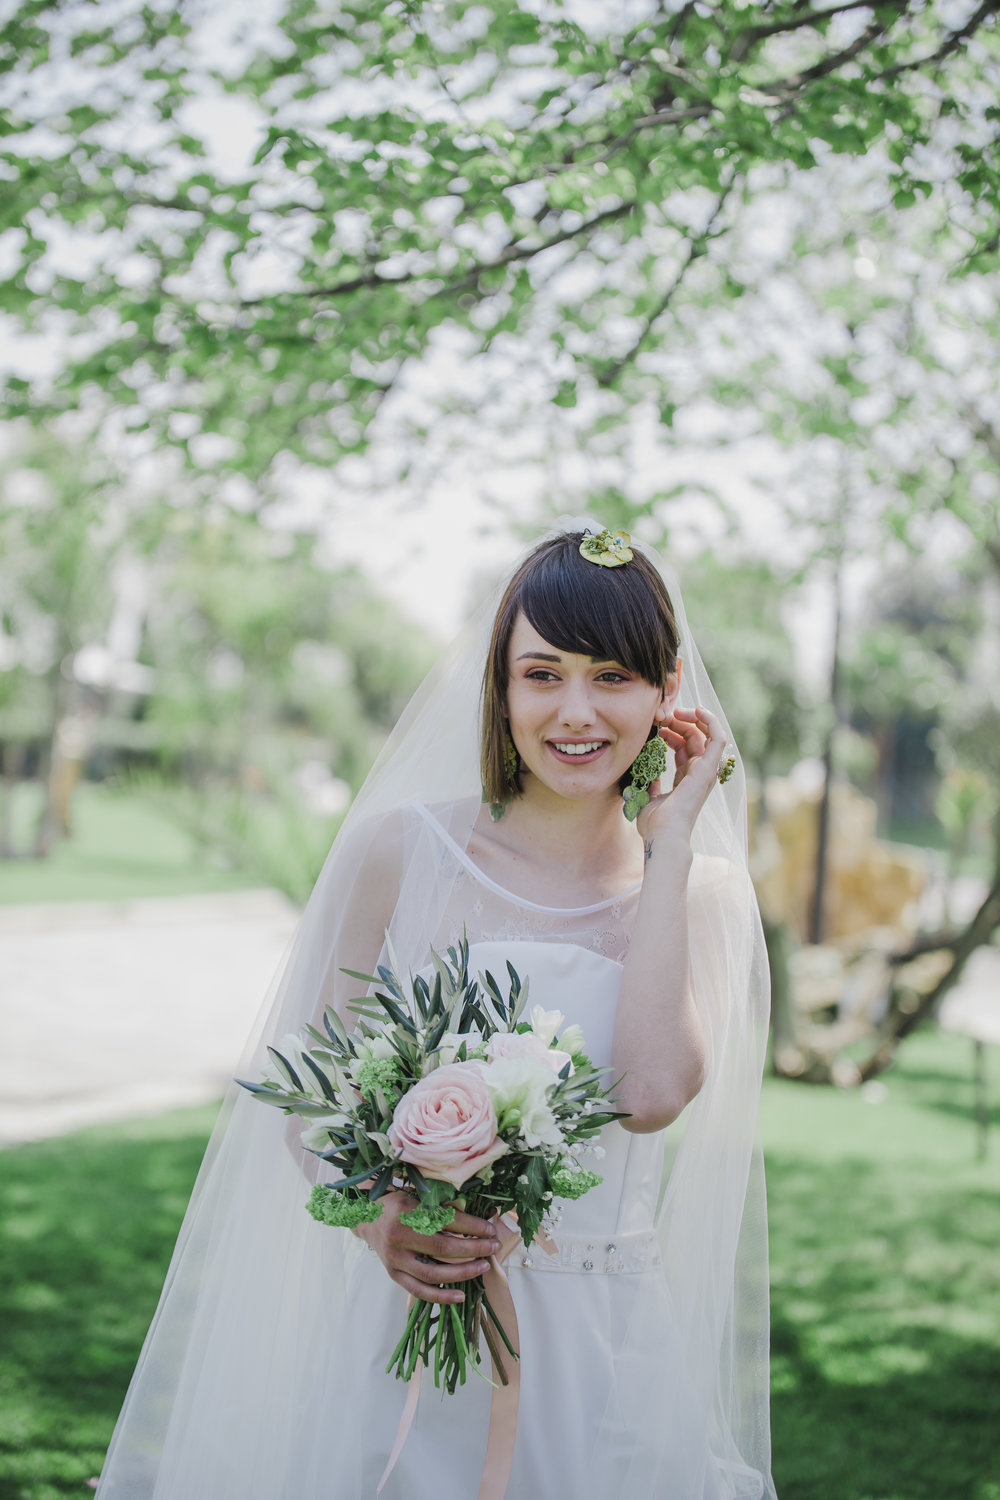 Pretty Bridal Portrait from a Lemon Yellow Garden Wedding Styled Shoot in Rome Italy - by Jess Palatucci Photography - as seen on www.BrendasWeddingBlog.com